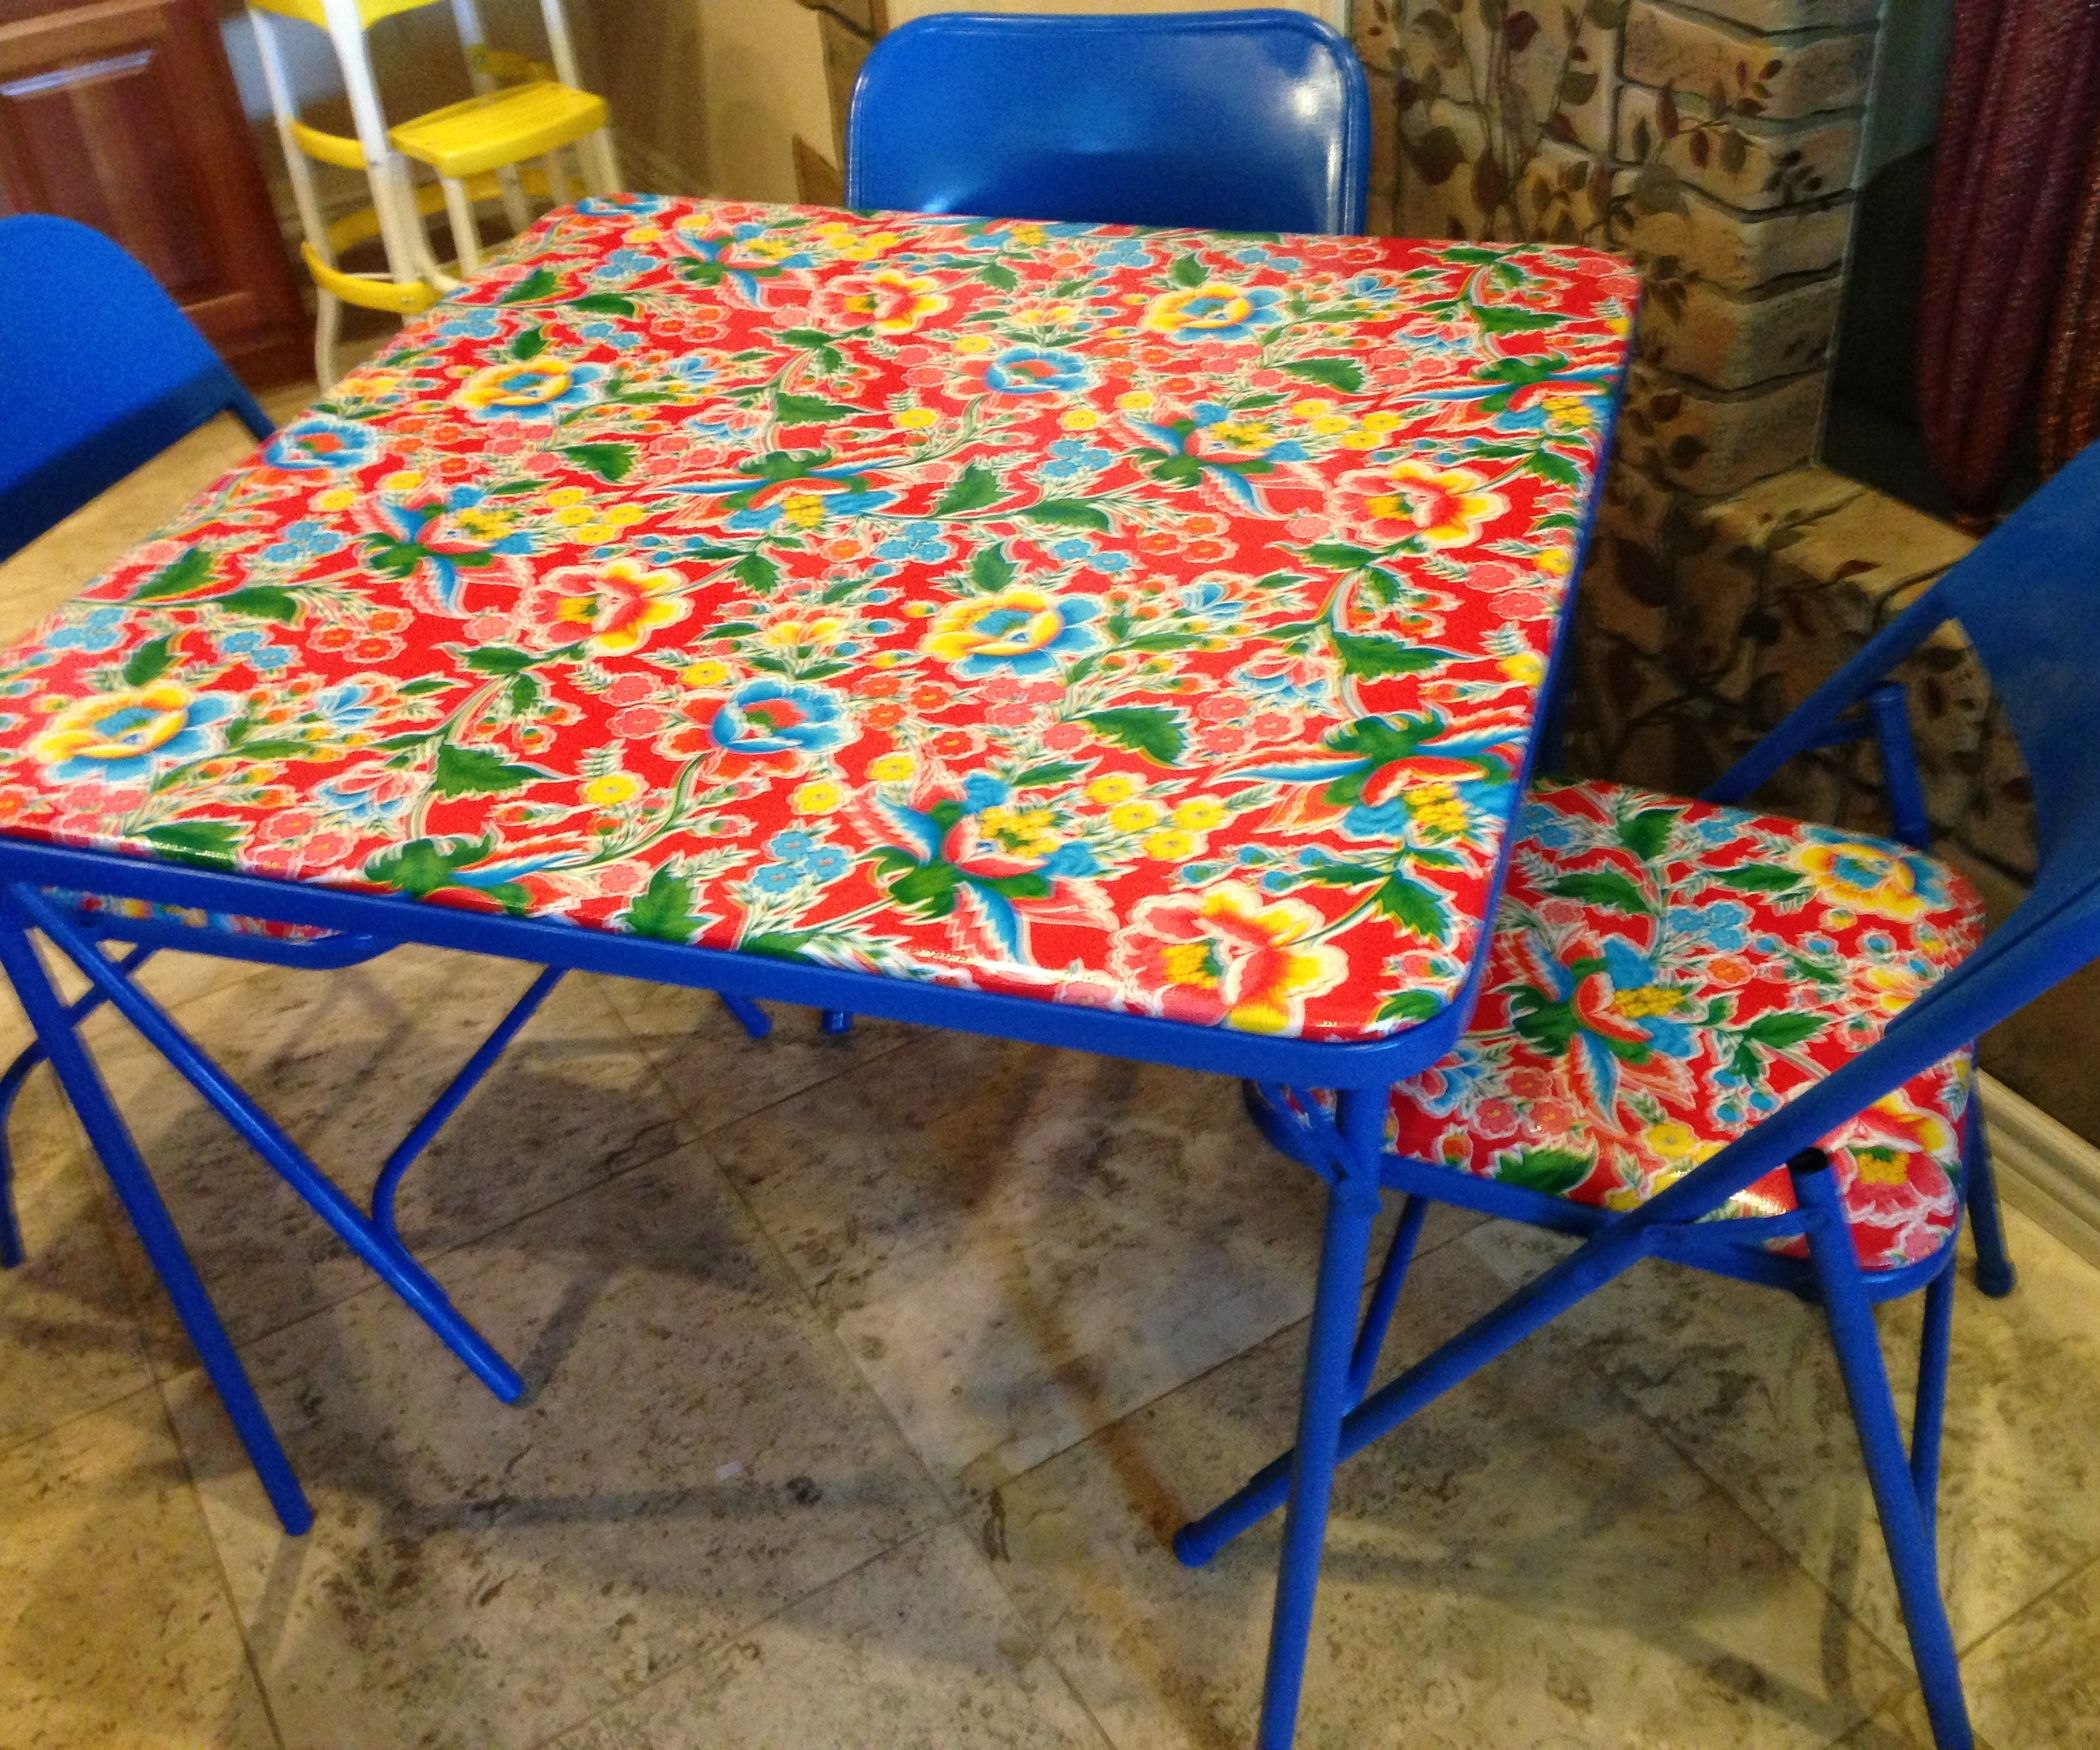 Craft a New Crafting Table; Upcycle Yucky Old Card Table